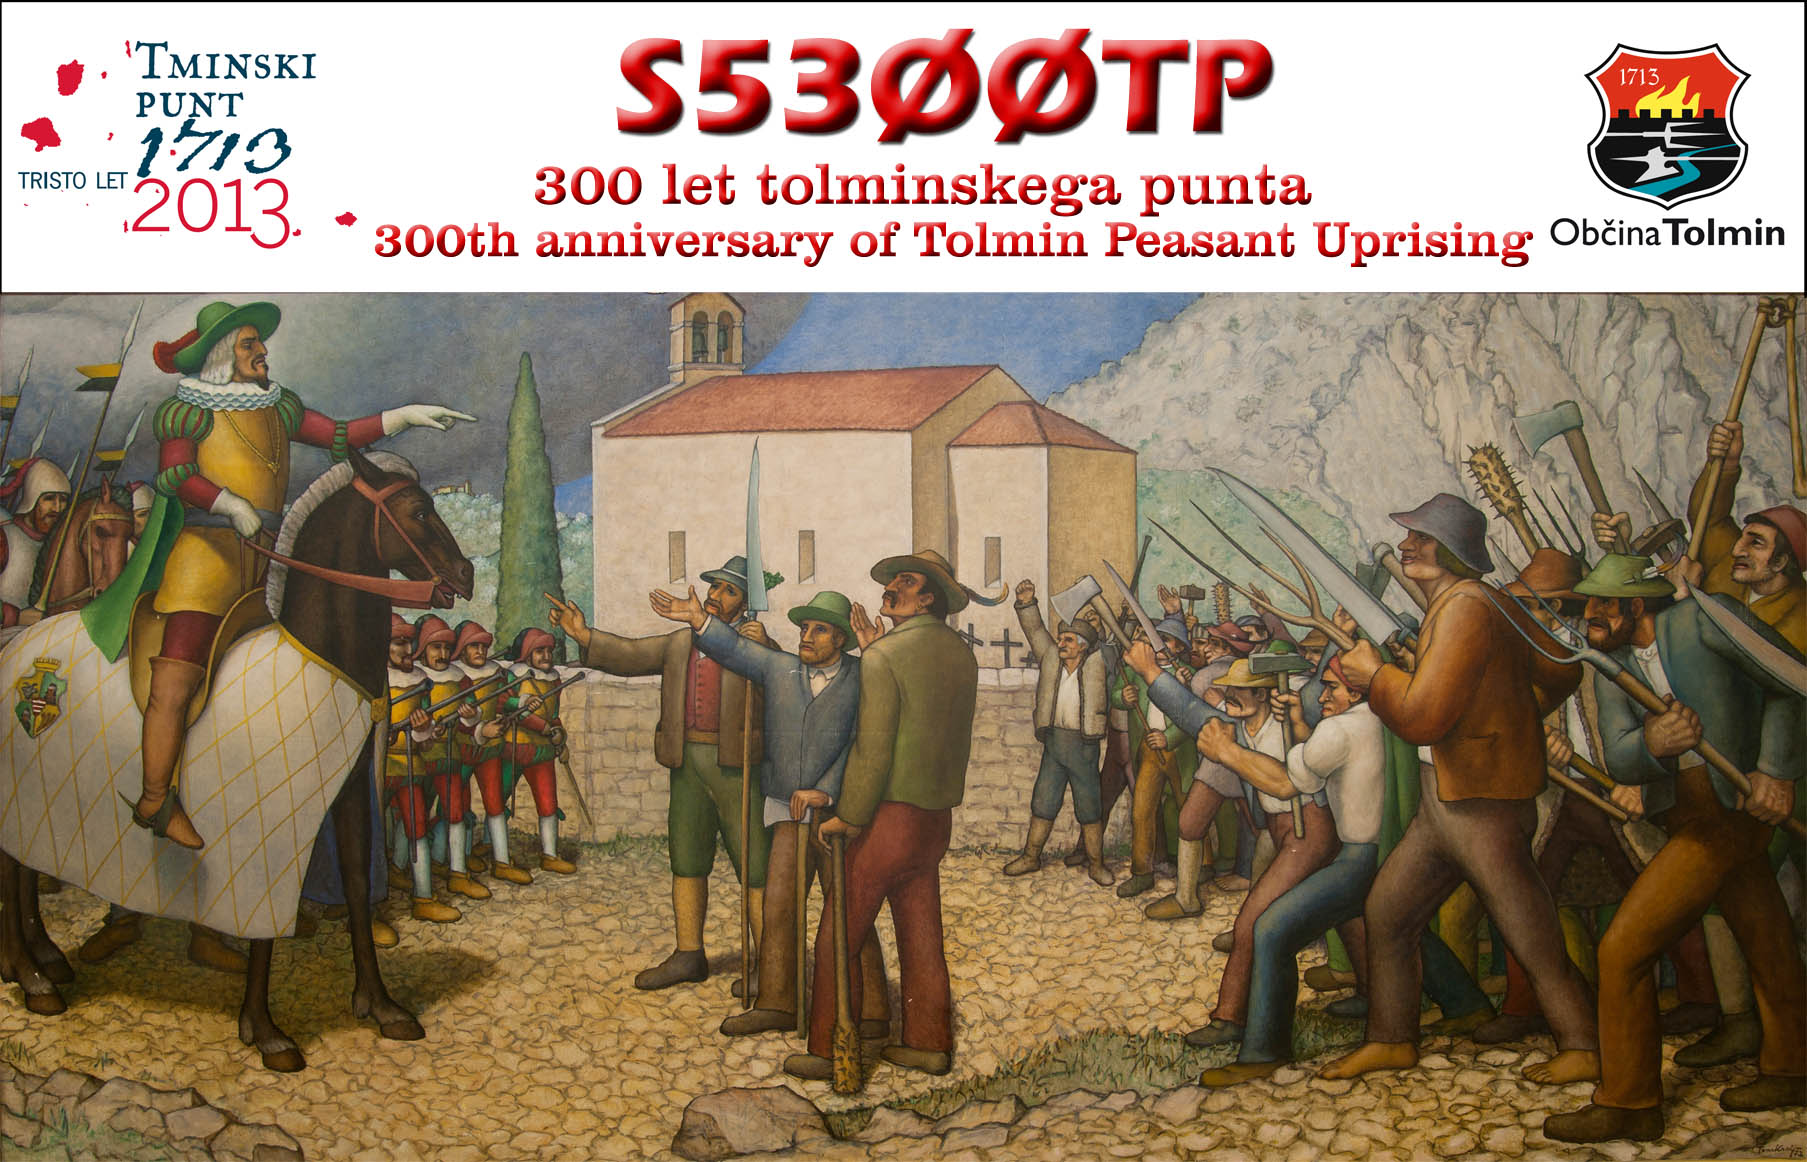 s5300tp special call qsl card